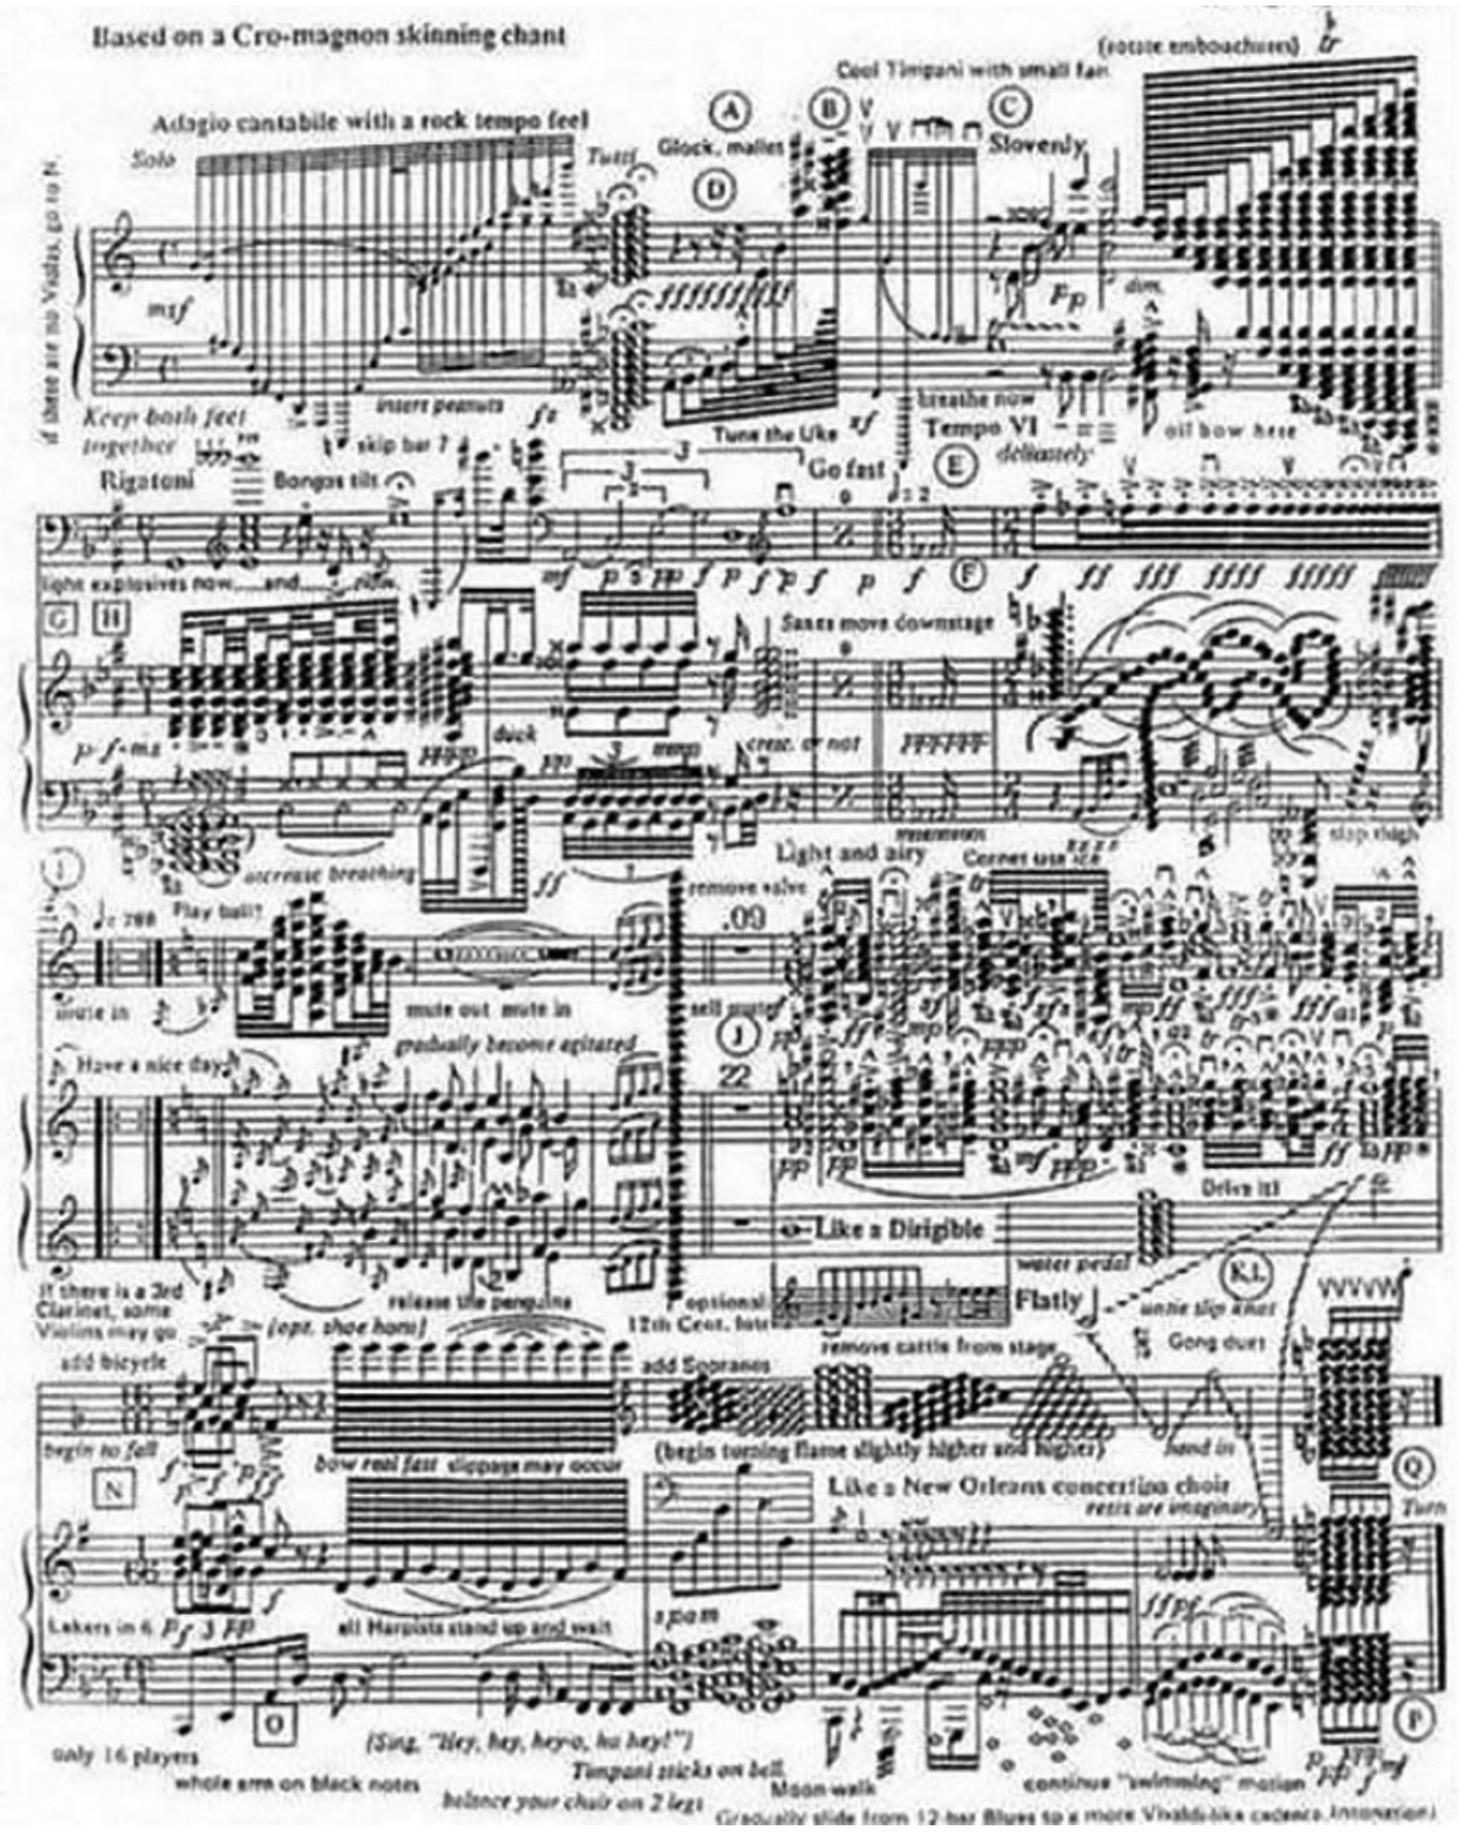 If 2020 was a piece of sheet music...